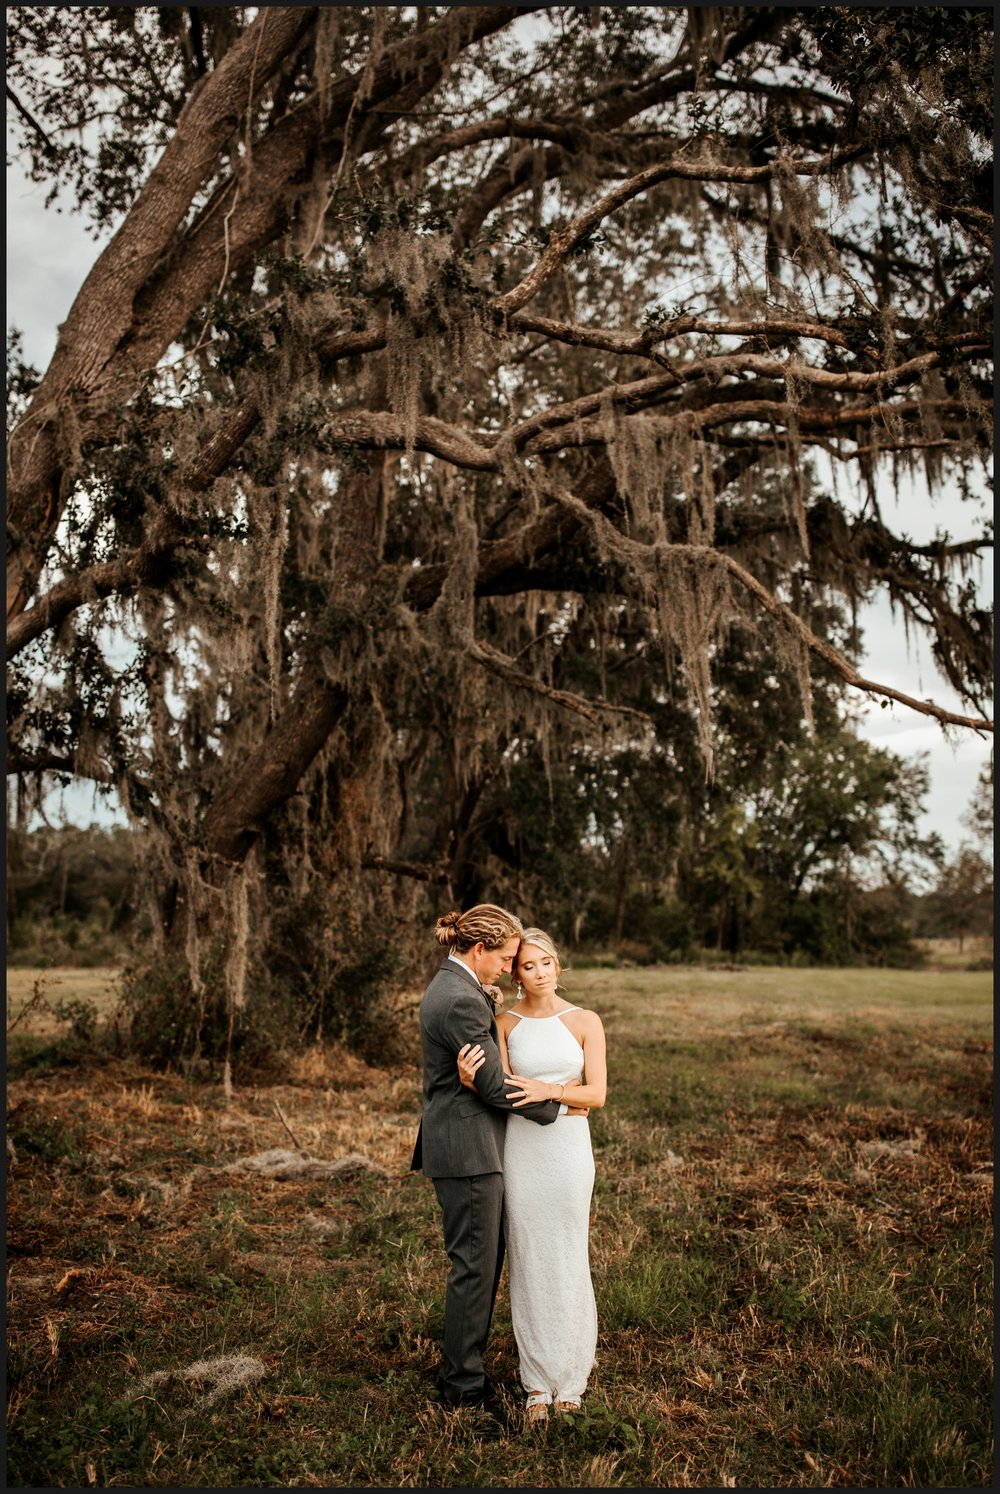 Orlando-Wedding-Photographer-destination-wedding-photographer-florida-wedding-photographer-bohemian-wedding-photographer_0864.jpg